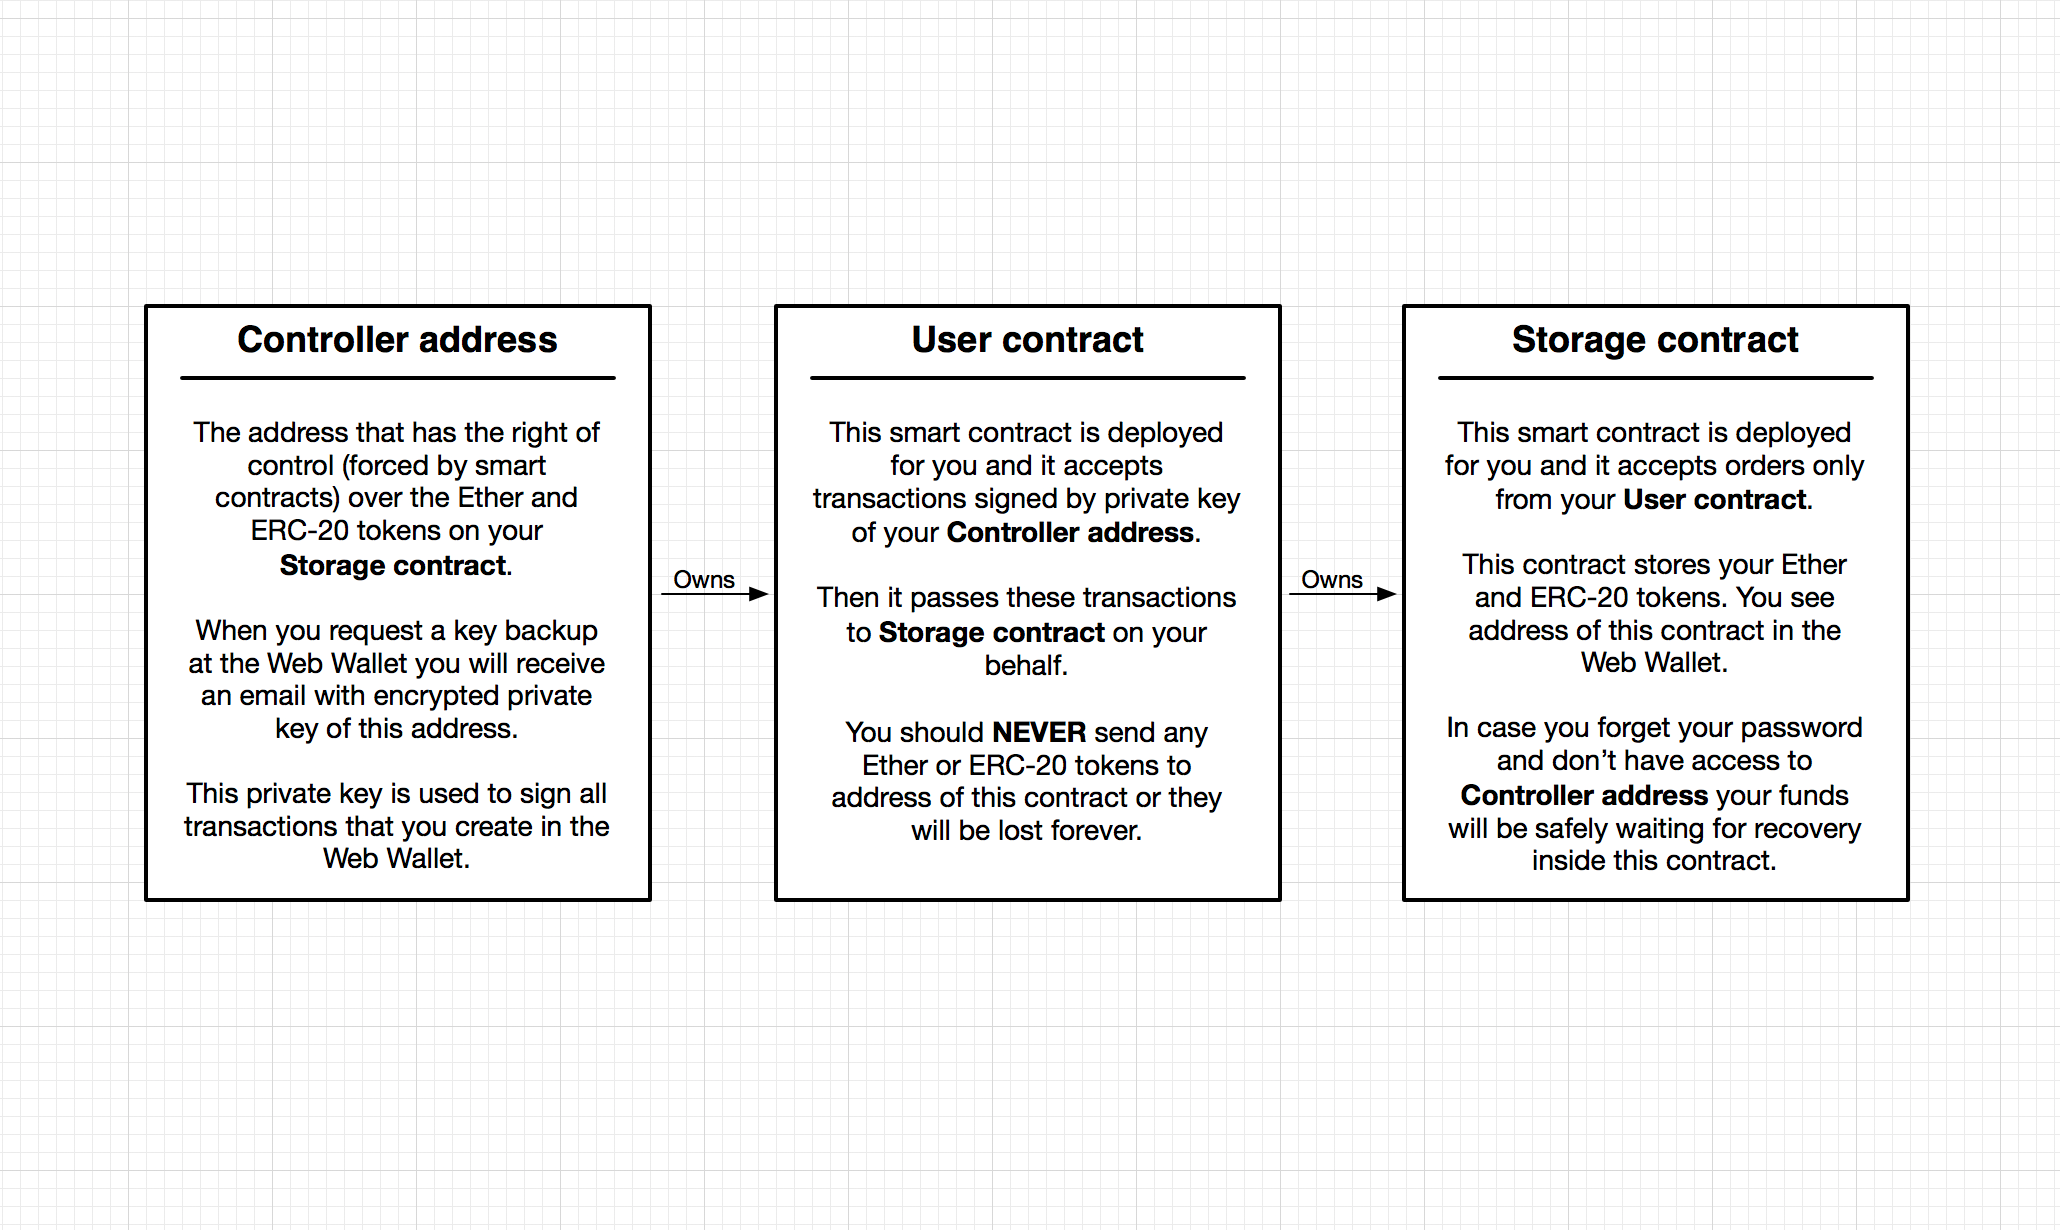 User contracts diagram ambisafe help center important your email backup contains the private key for controller address in dashboard you see storage contract address ccuart Gallery